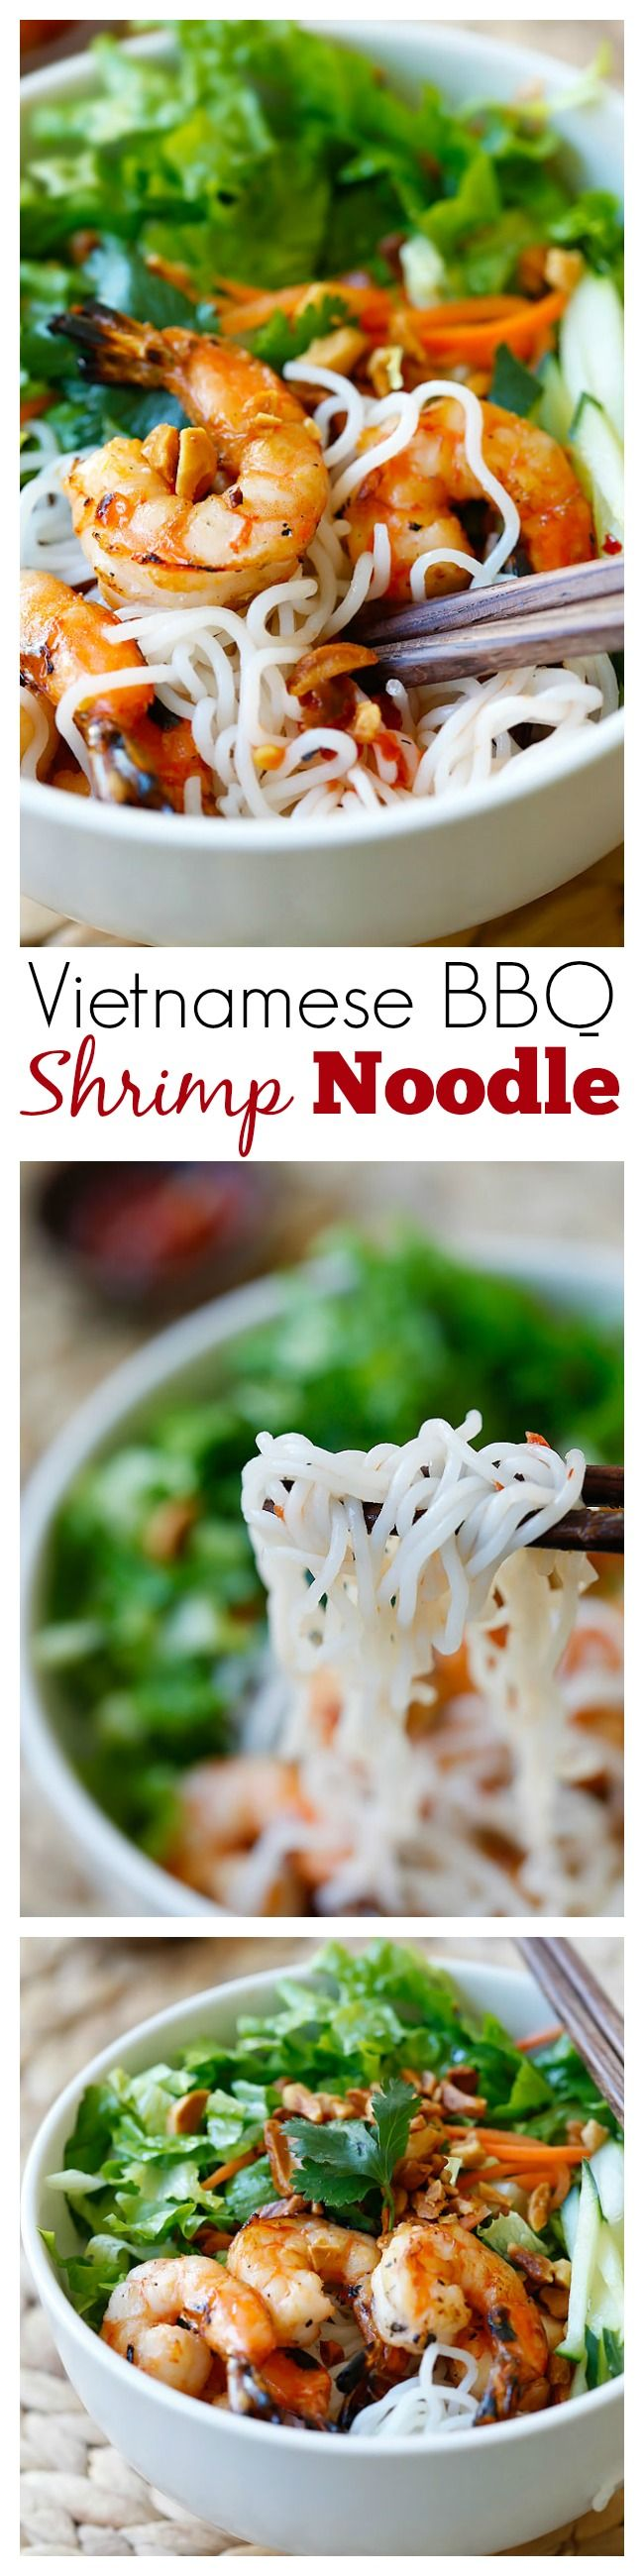 Vietnamese BBQ Shrimp Vermicelli or Bun Tom Heo Nuong is a delicious and healthy noodle dish with shrimp and lots of vegetables, served with a sauce   rasamalaysia.com